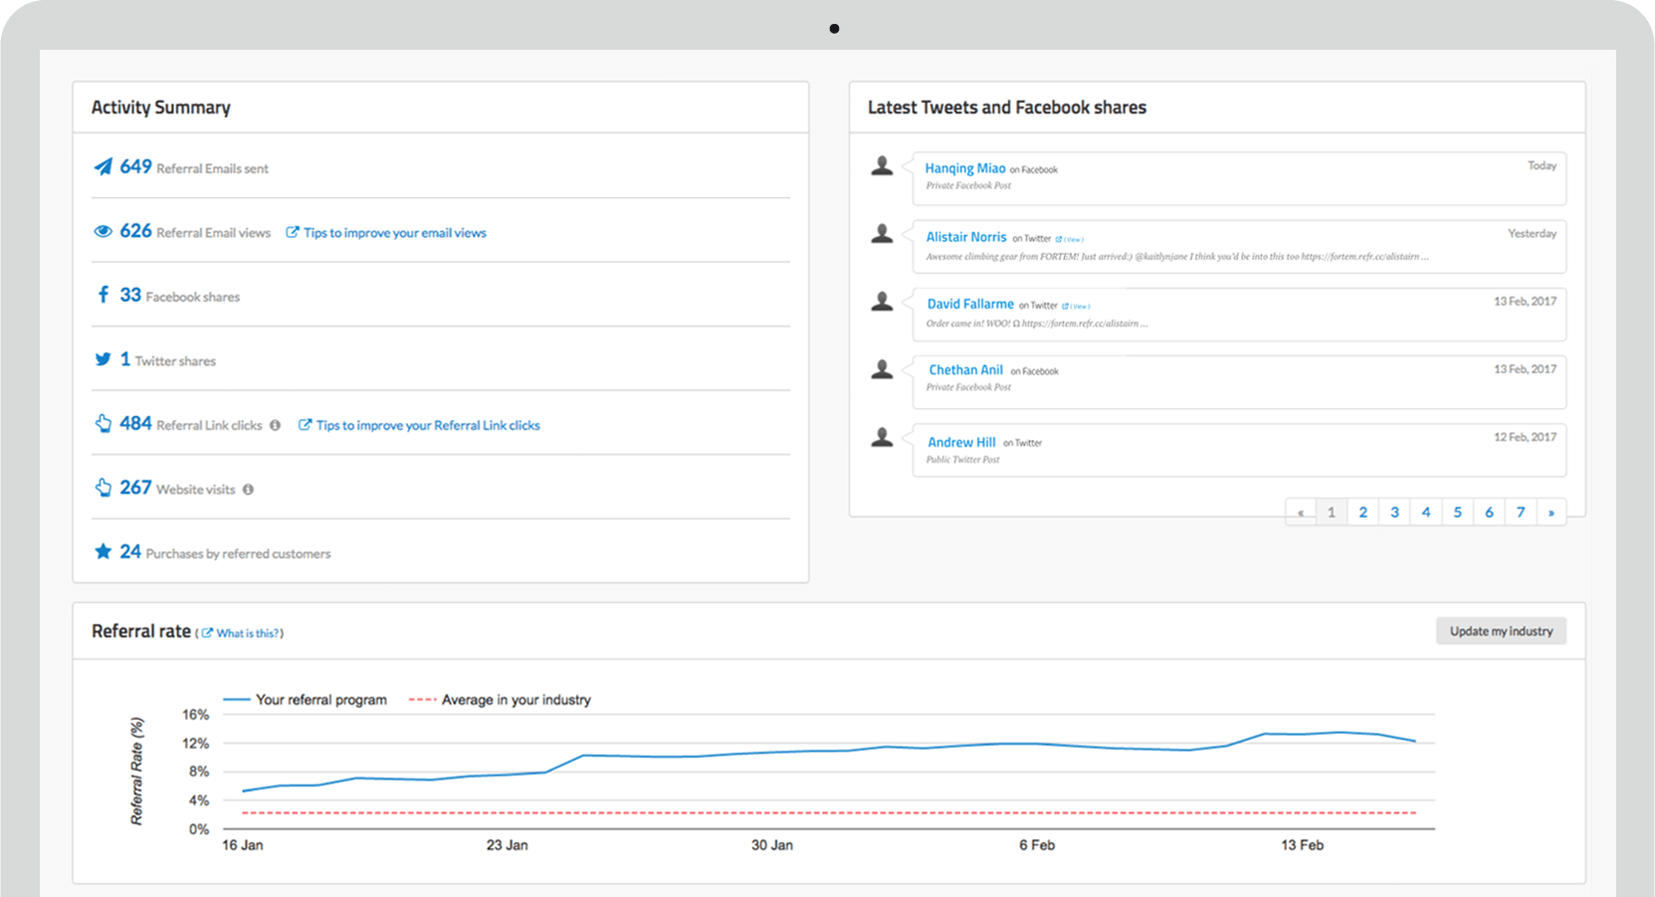 Screenshot of a dashboard showing a graph and other statistics about an ecommerce store